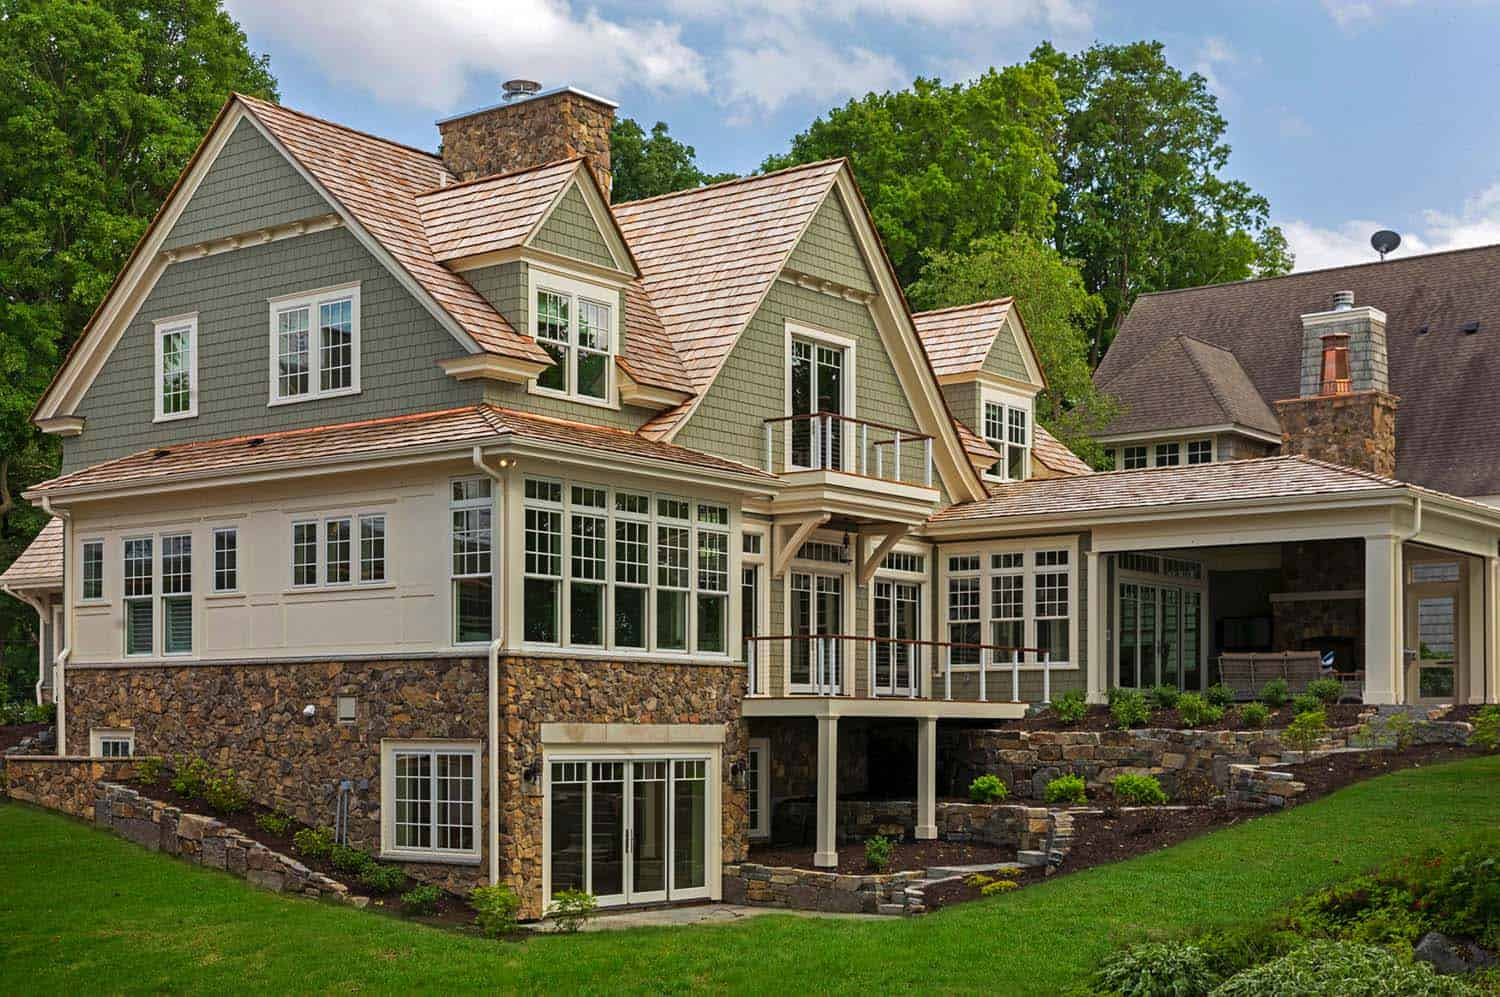 Charming cottage inspired home nestled on lake minnetonka for Charming cottage house plans